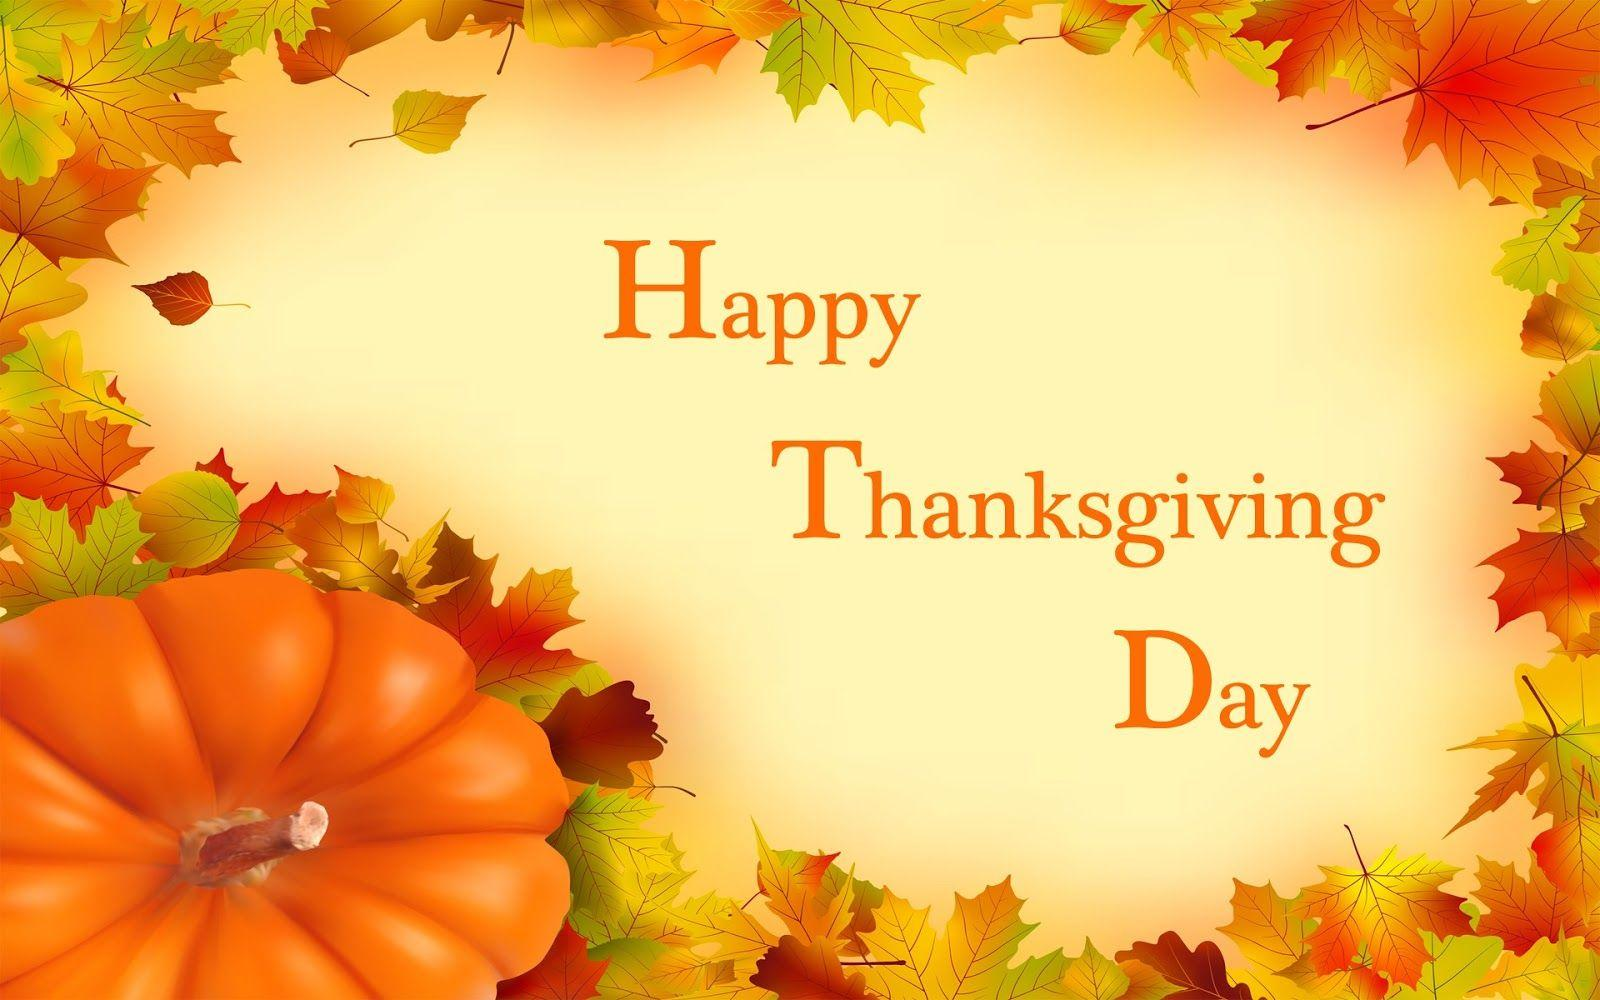 happy thanksgiving day pumpkin hd pc background wallpaper